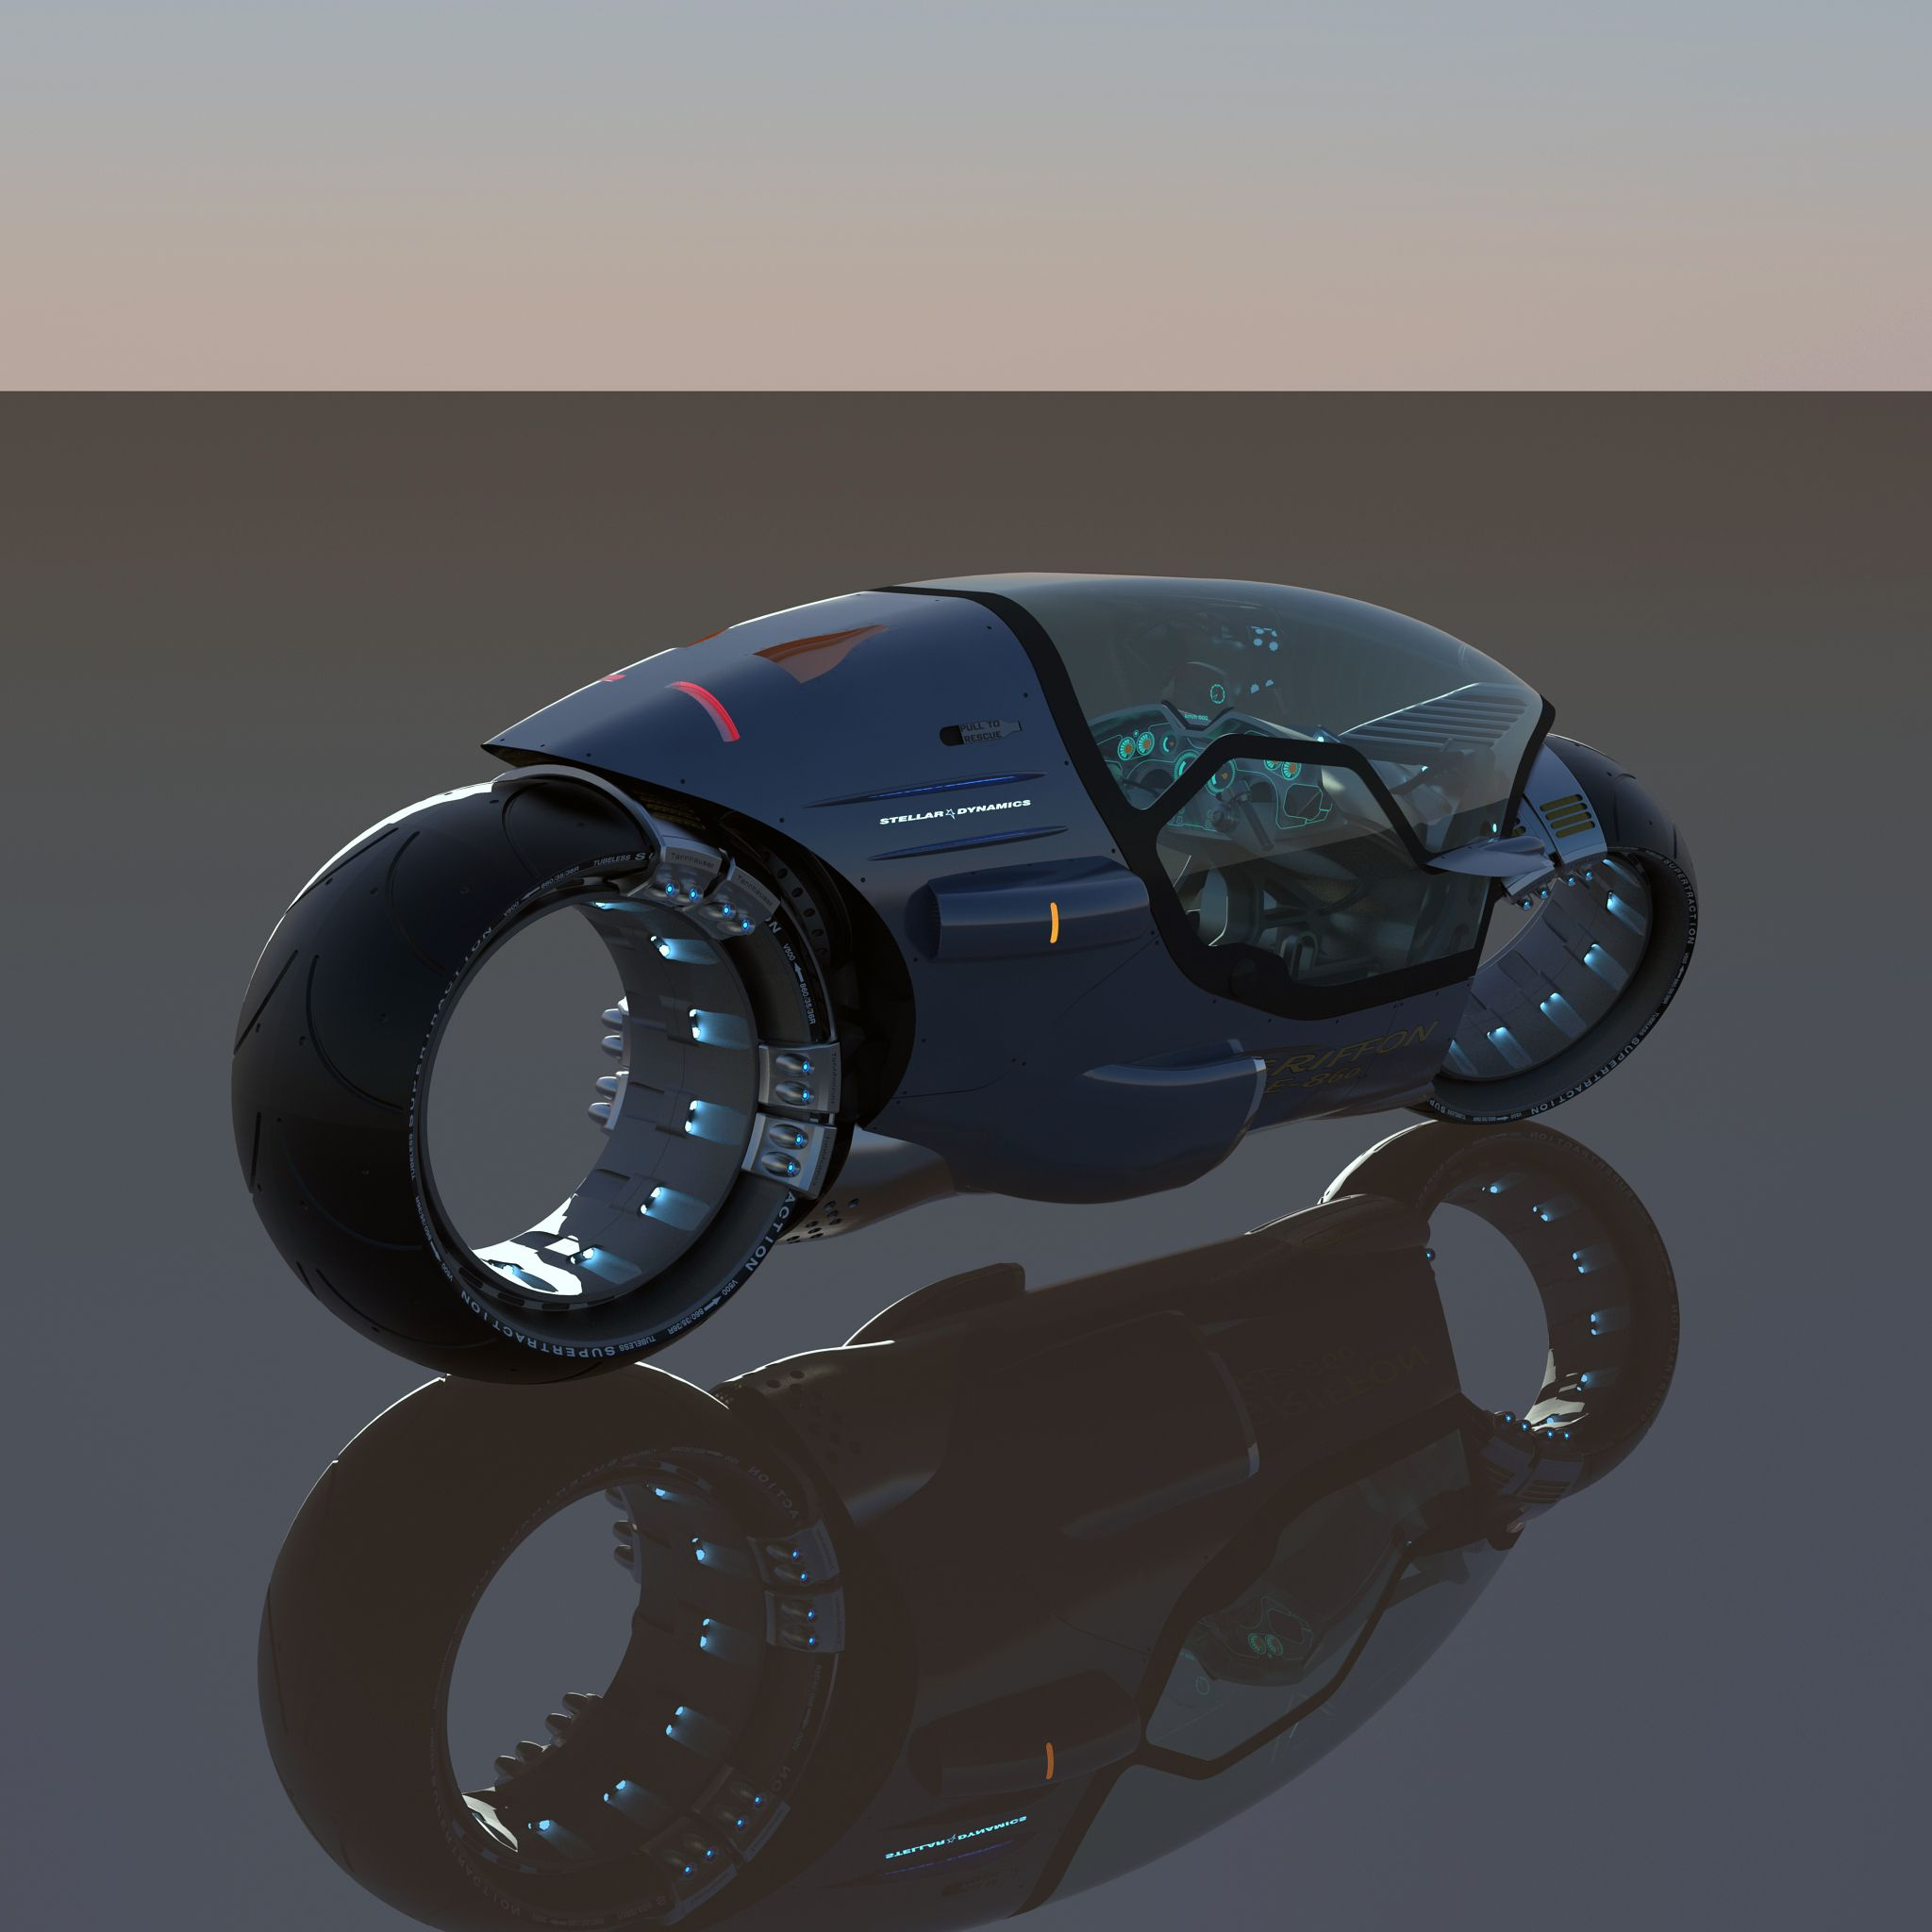 Bike 2 By Scifiwarships By Retromaniak Concept Motorcycles